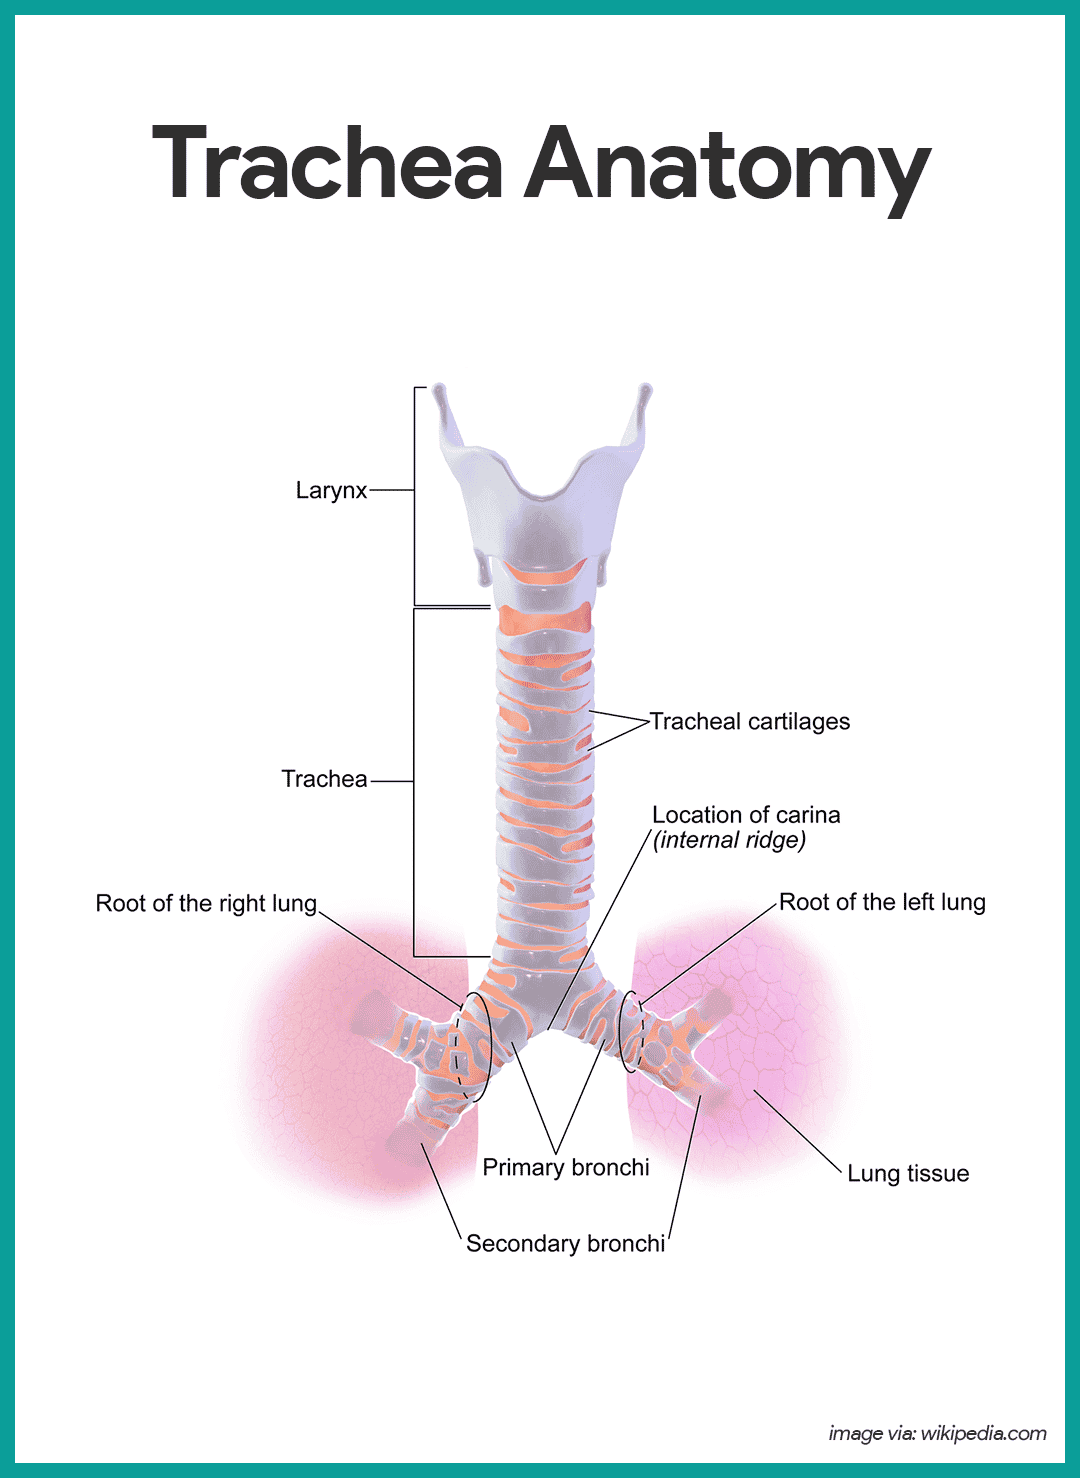 Trachea Anatomy-Respiratory System Anatomy and Physiology